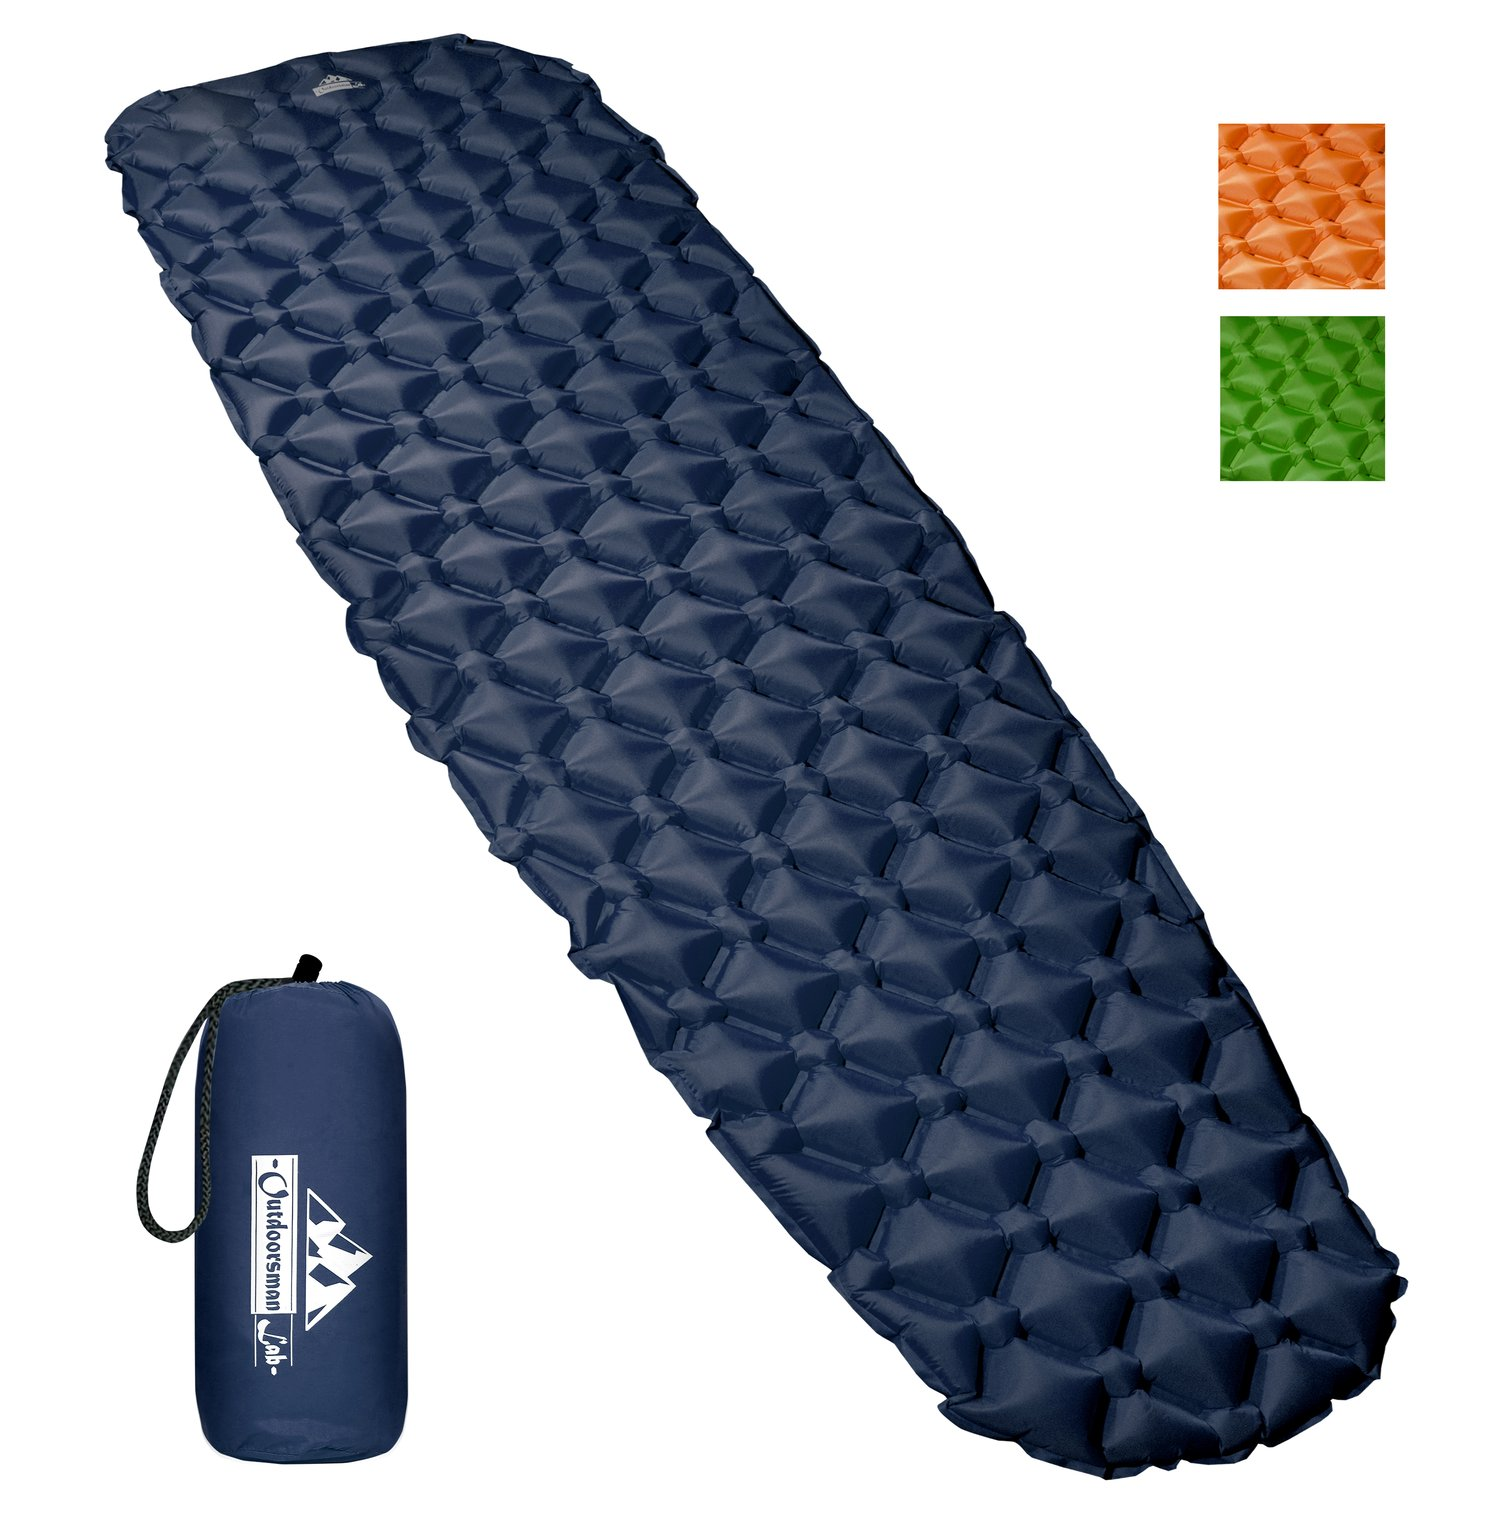 Air-Filled Sleeping Pads